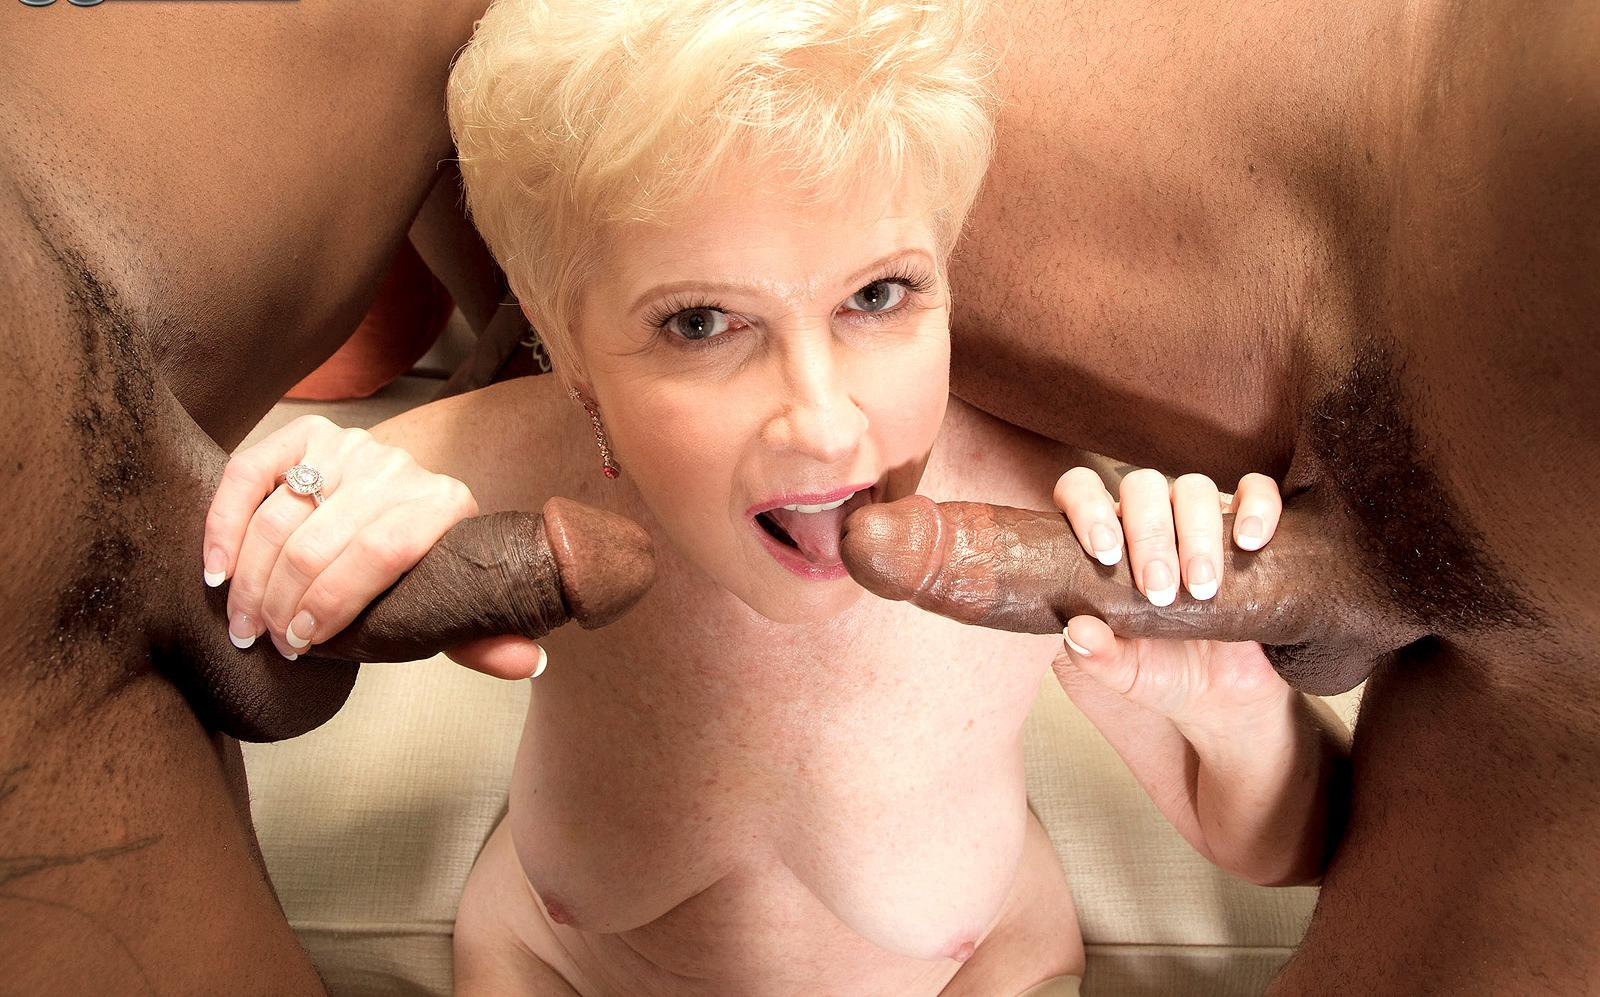 Kari a granny loves to do it with big black dicks